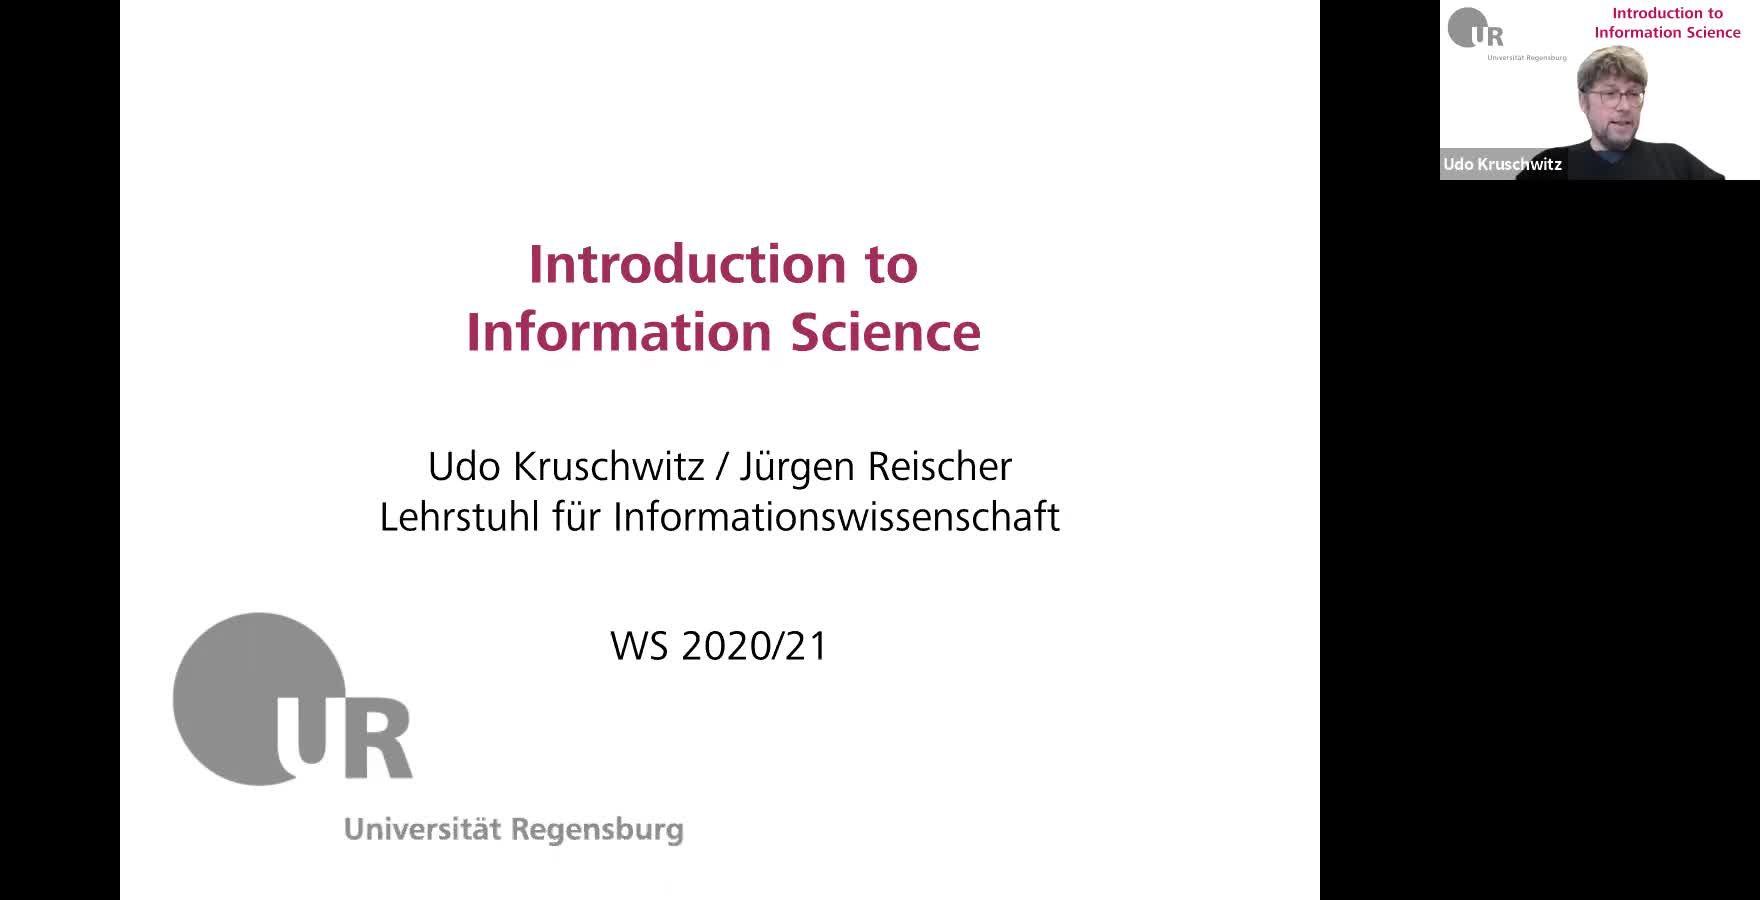 Introduction to Information Science - Lecture 1 (Overview)